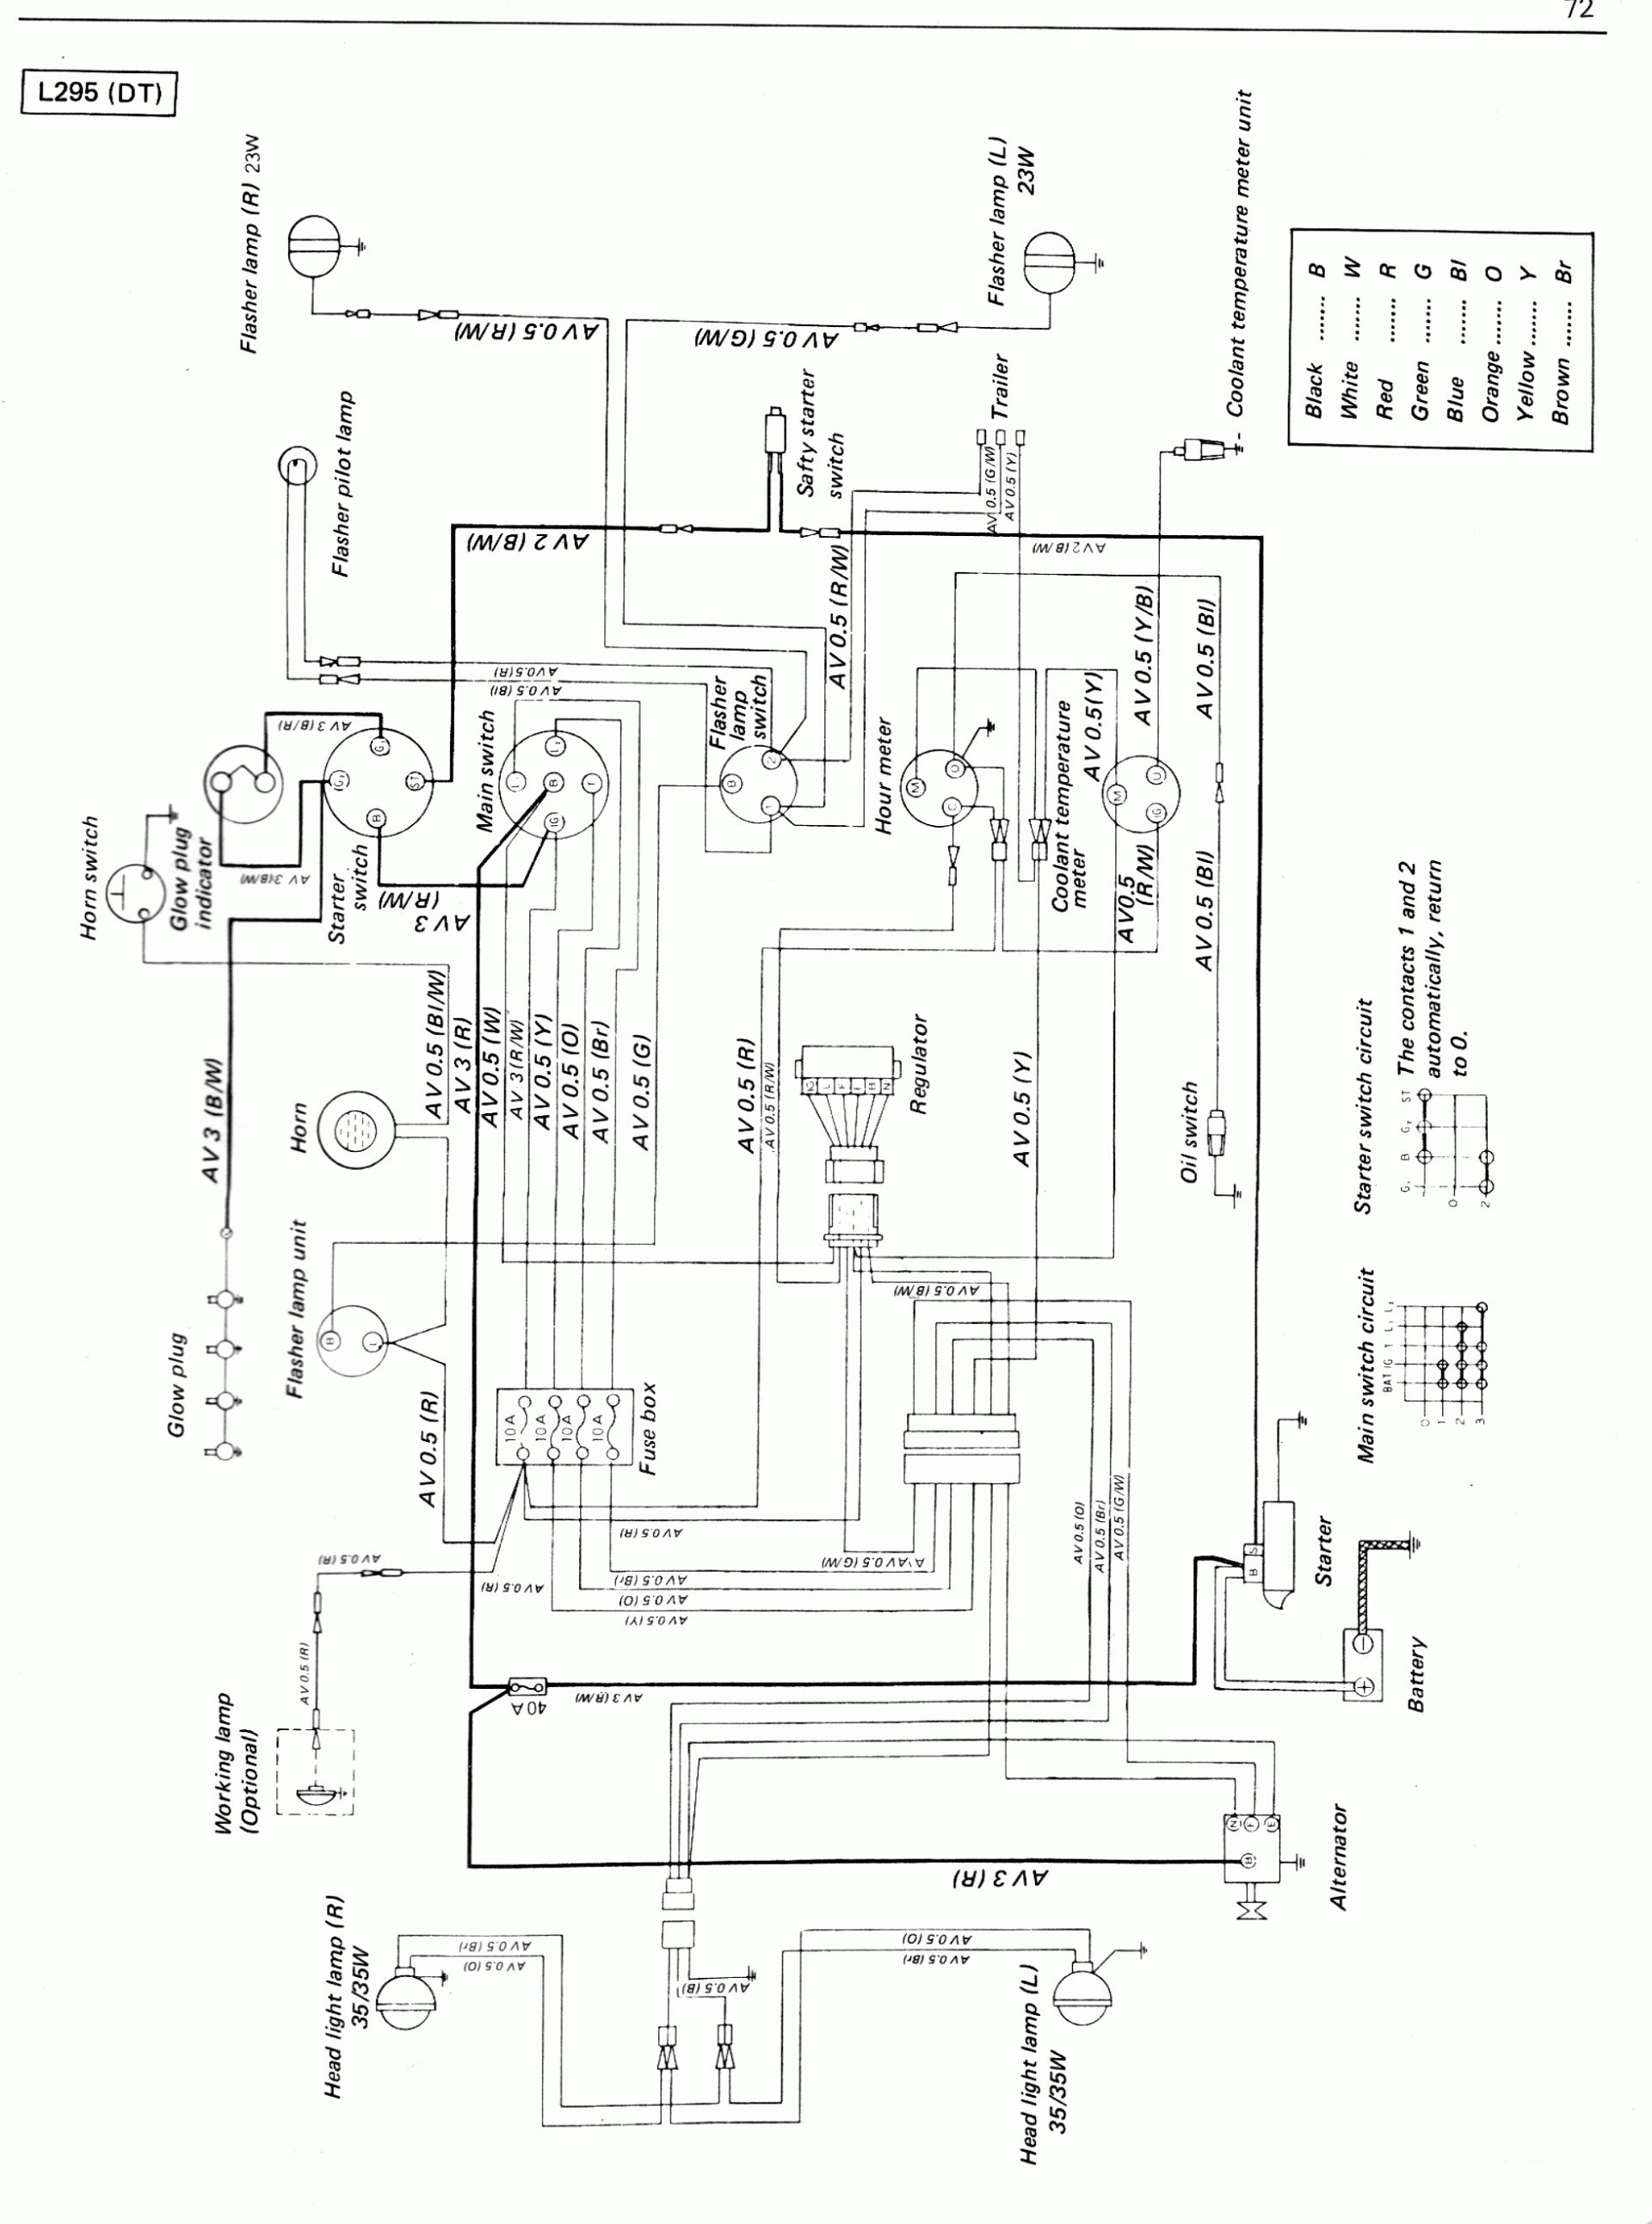 FM_1297] Mitsubishi Compact Tractor Wiring Diagram Wiring DiagramAlly Tobiq Mohammedshrine Librar Wiring 101